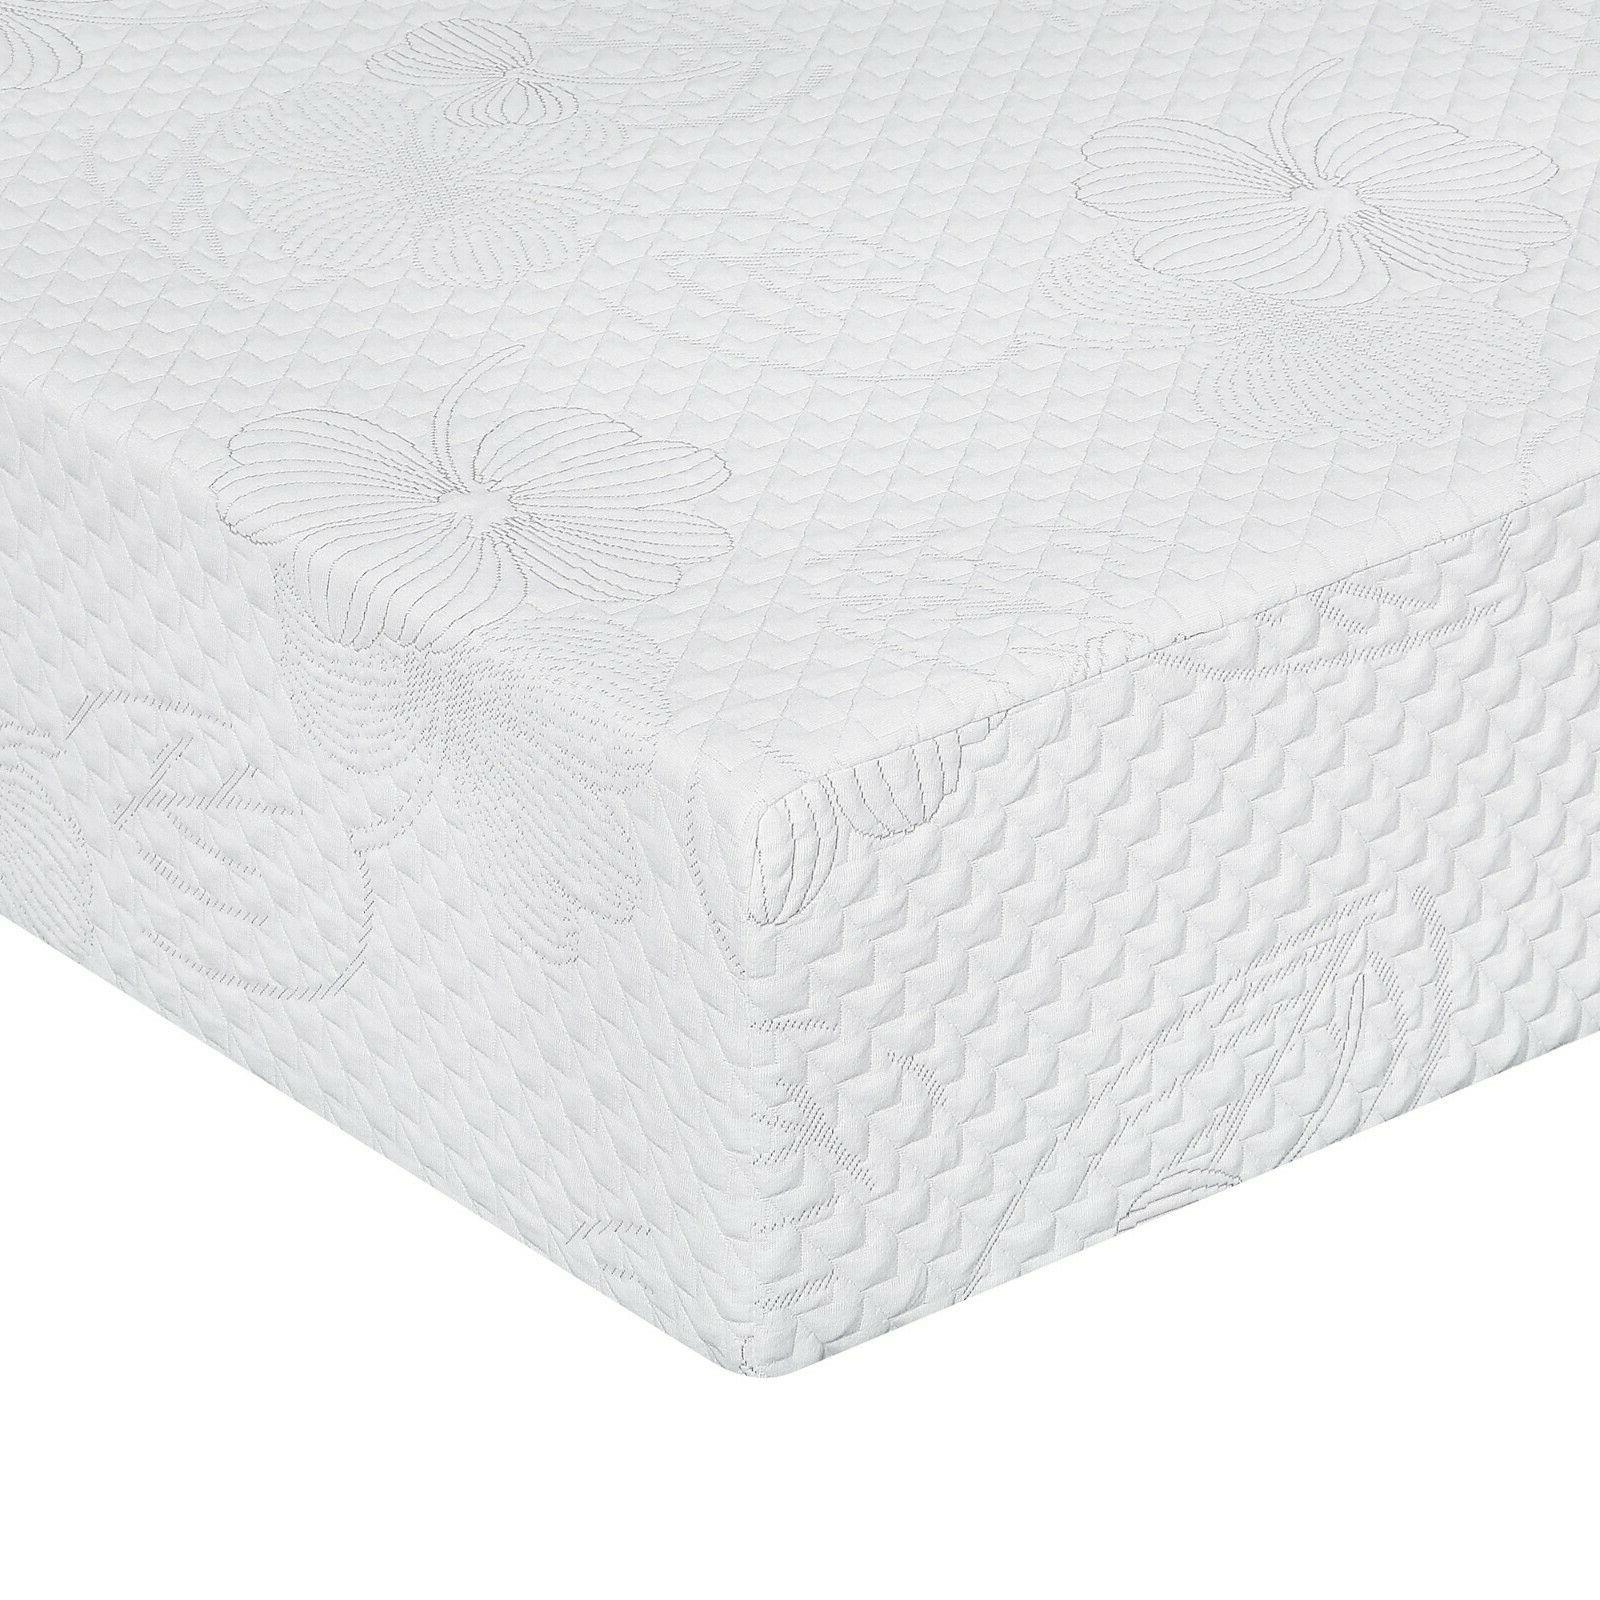 SLEEPLACE 8 I Gel Memory Foam Mattress, Bed, Four Sizes